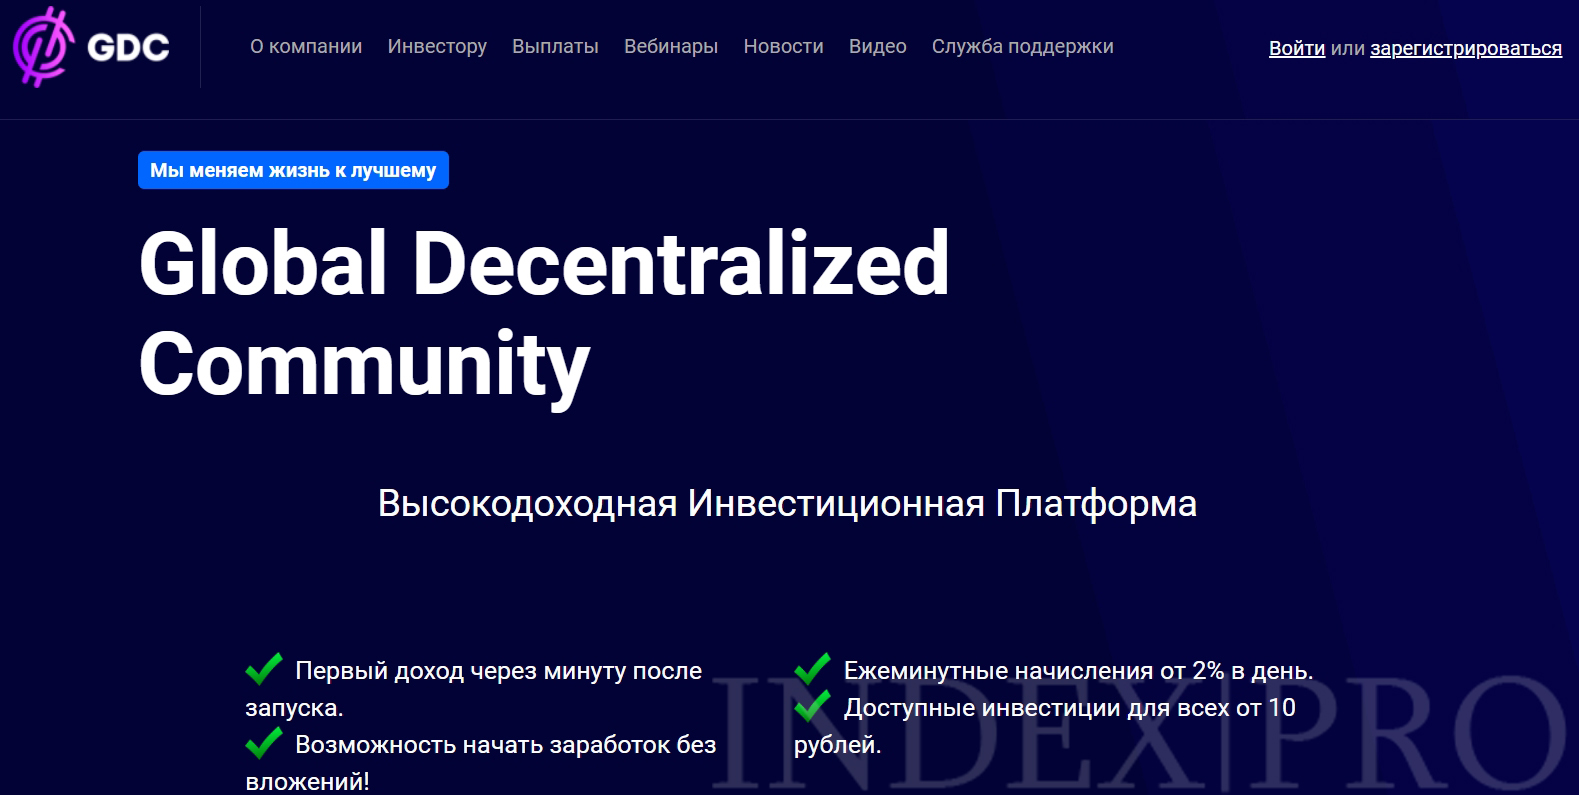 Global Decentralized Community